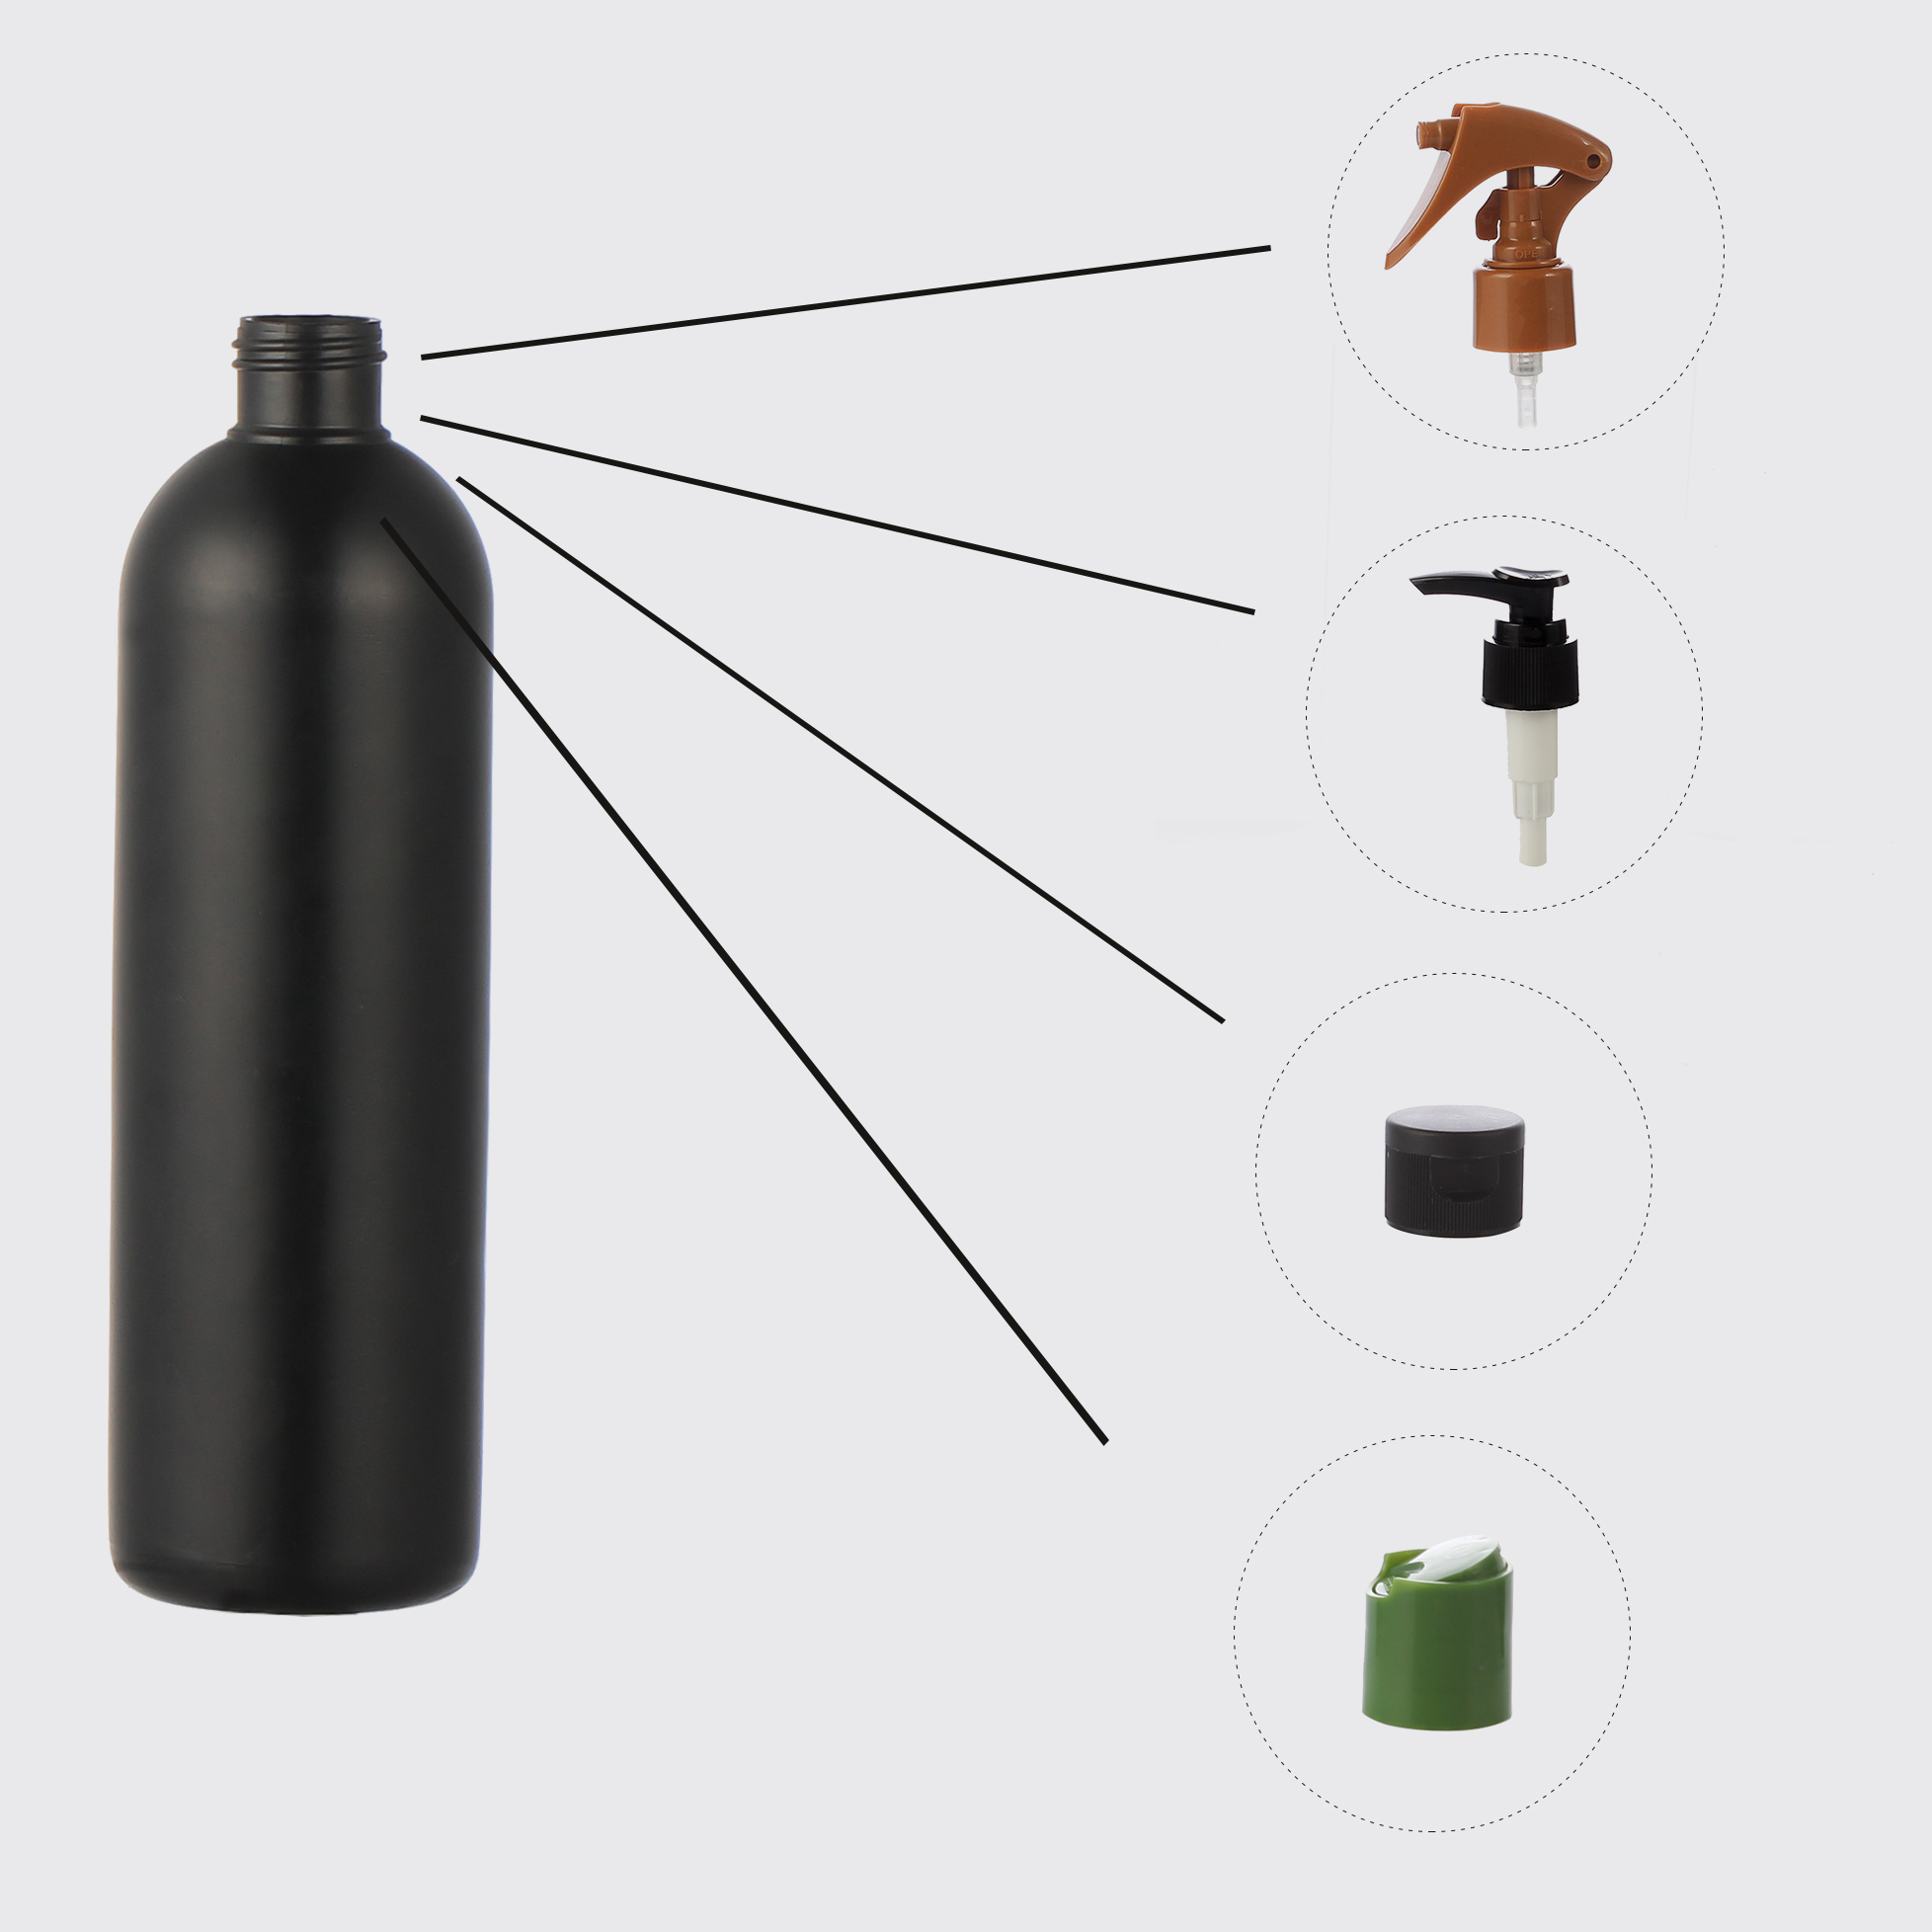 12oz black hdpe boston round bottle with trigger pump spray cap